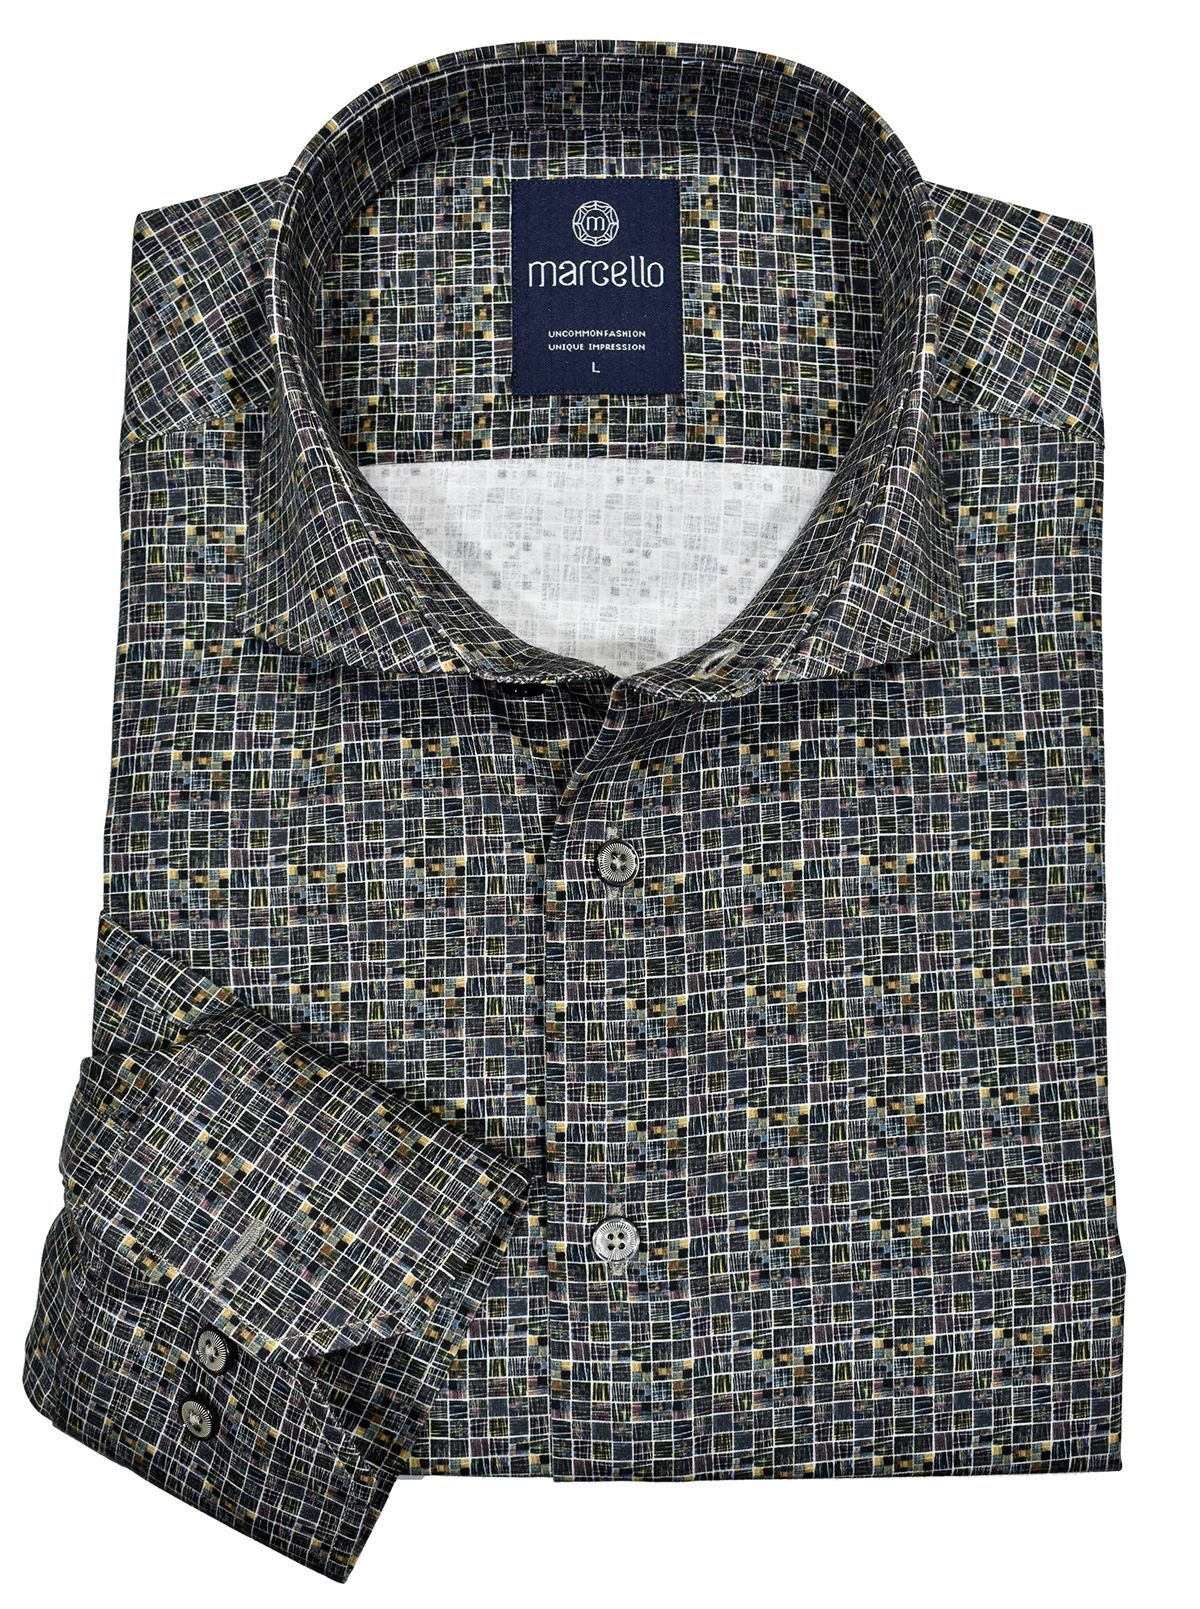 W197 Square Mosaic Men's Shirt - Marcello Sport